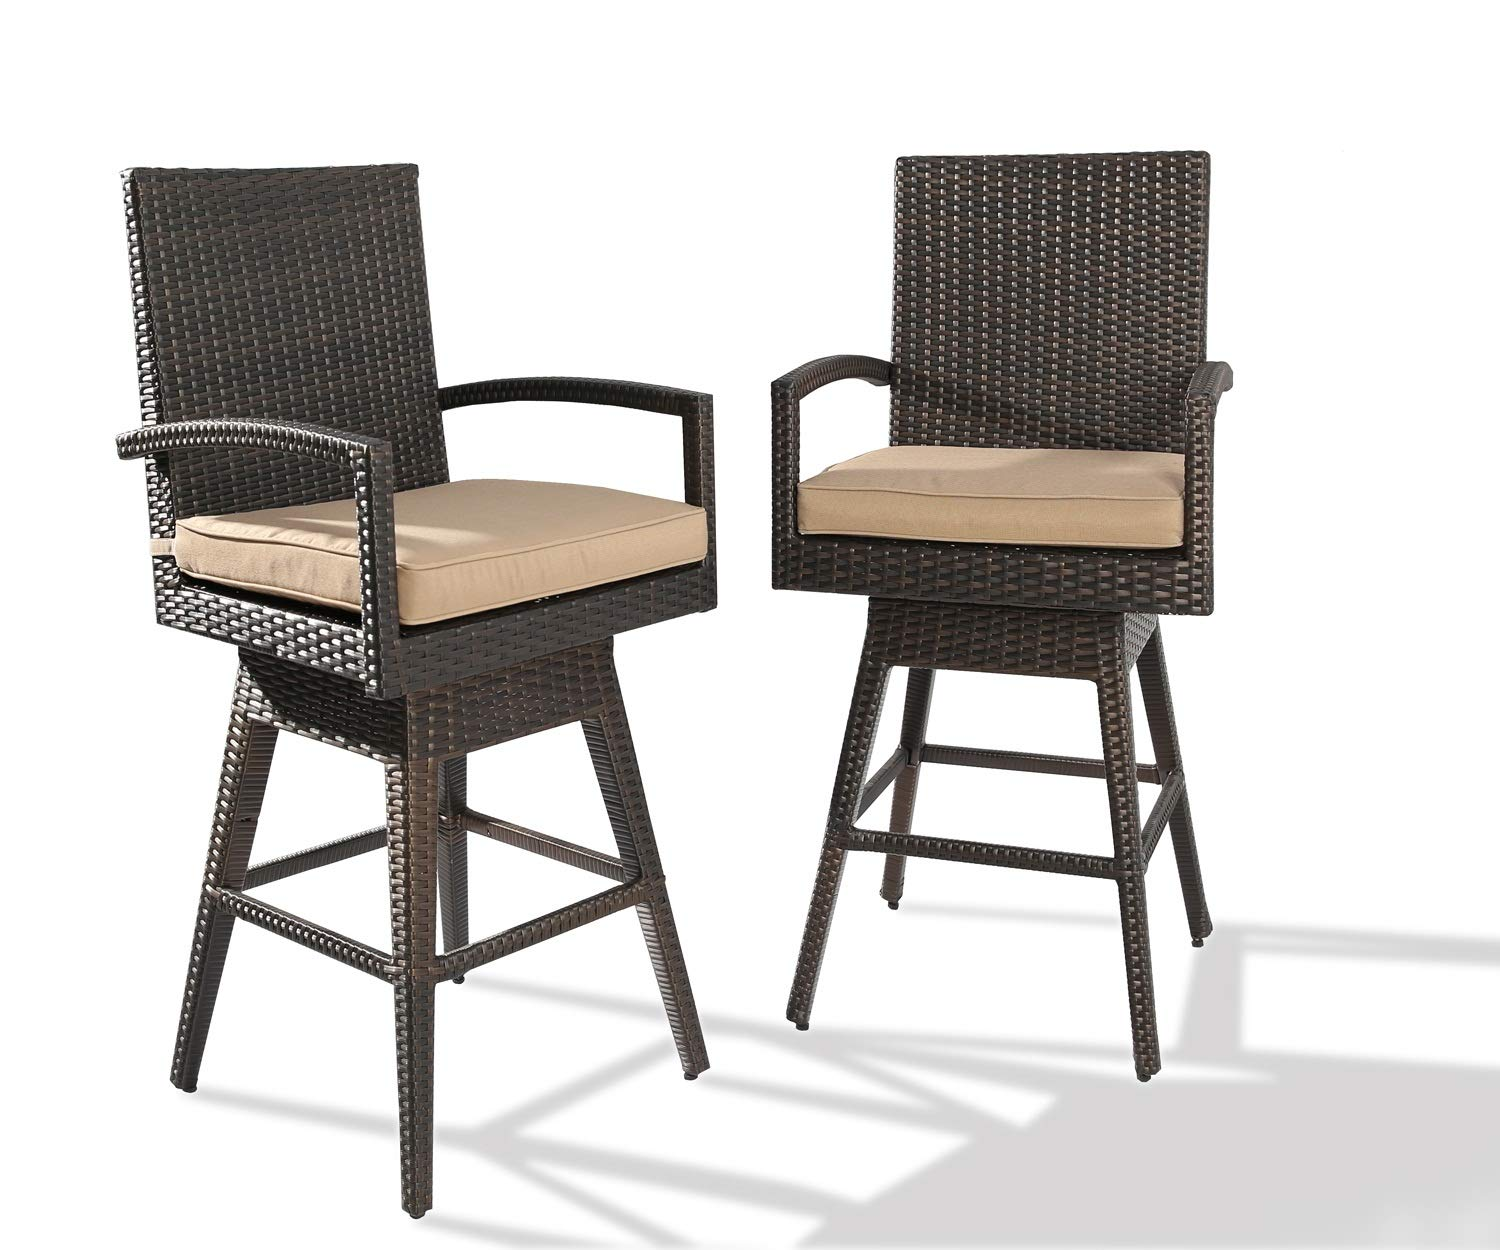 Ulax furniture 2Pack Outdoor Patio Furniture All-Weather Brown Wicker Swivel Bar Stool with Cushion by Ulax furniture